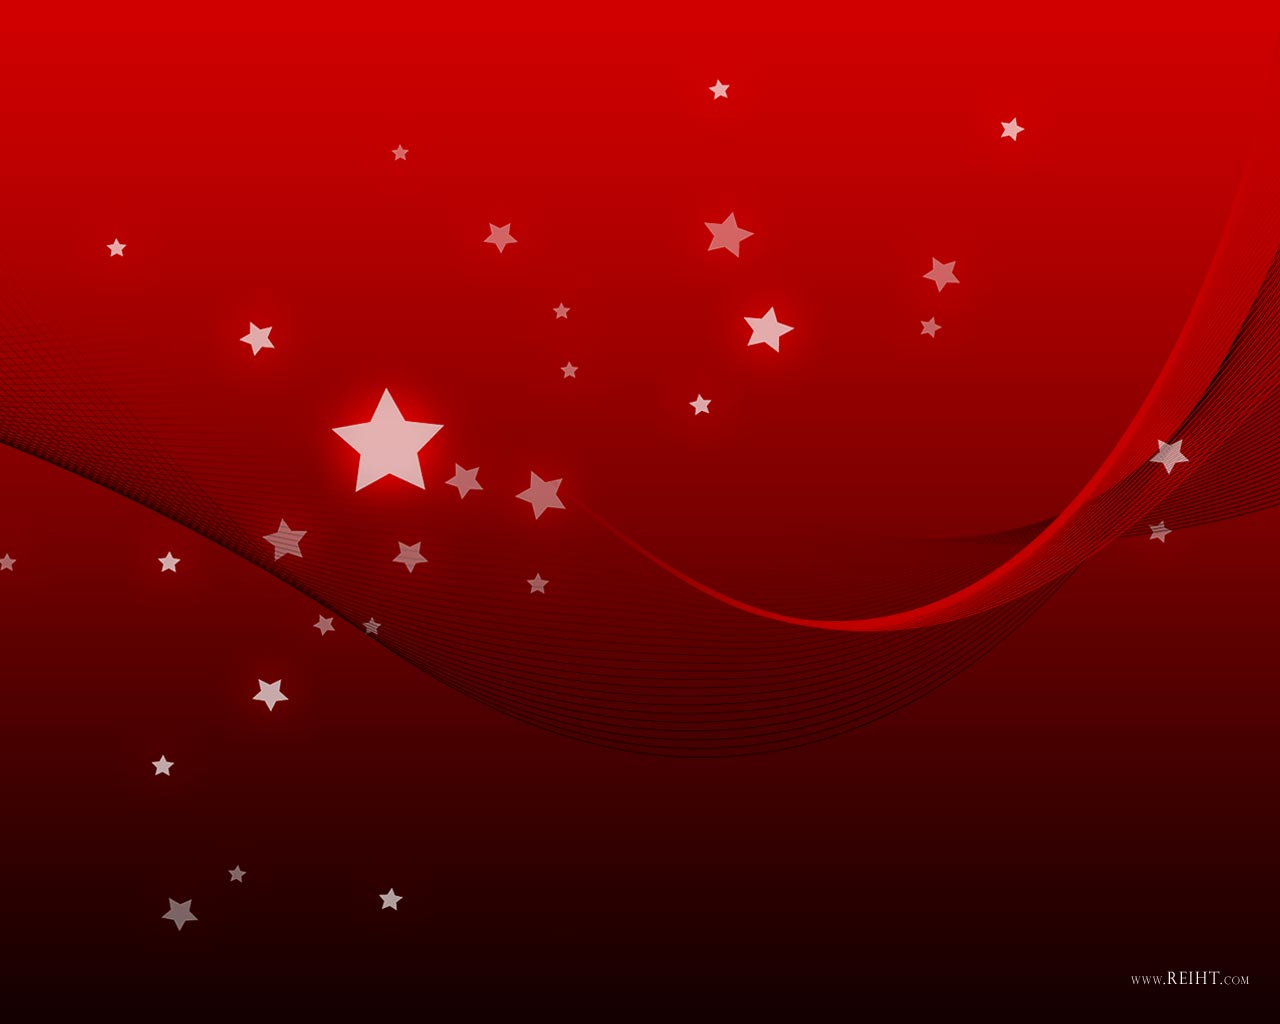 Red 3d hd background red 3d wallpapers Black Background and some PPT 1280x1024